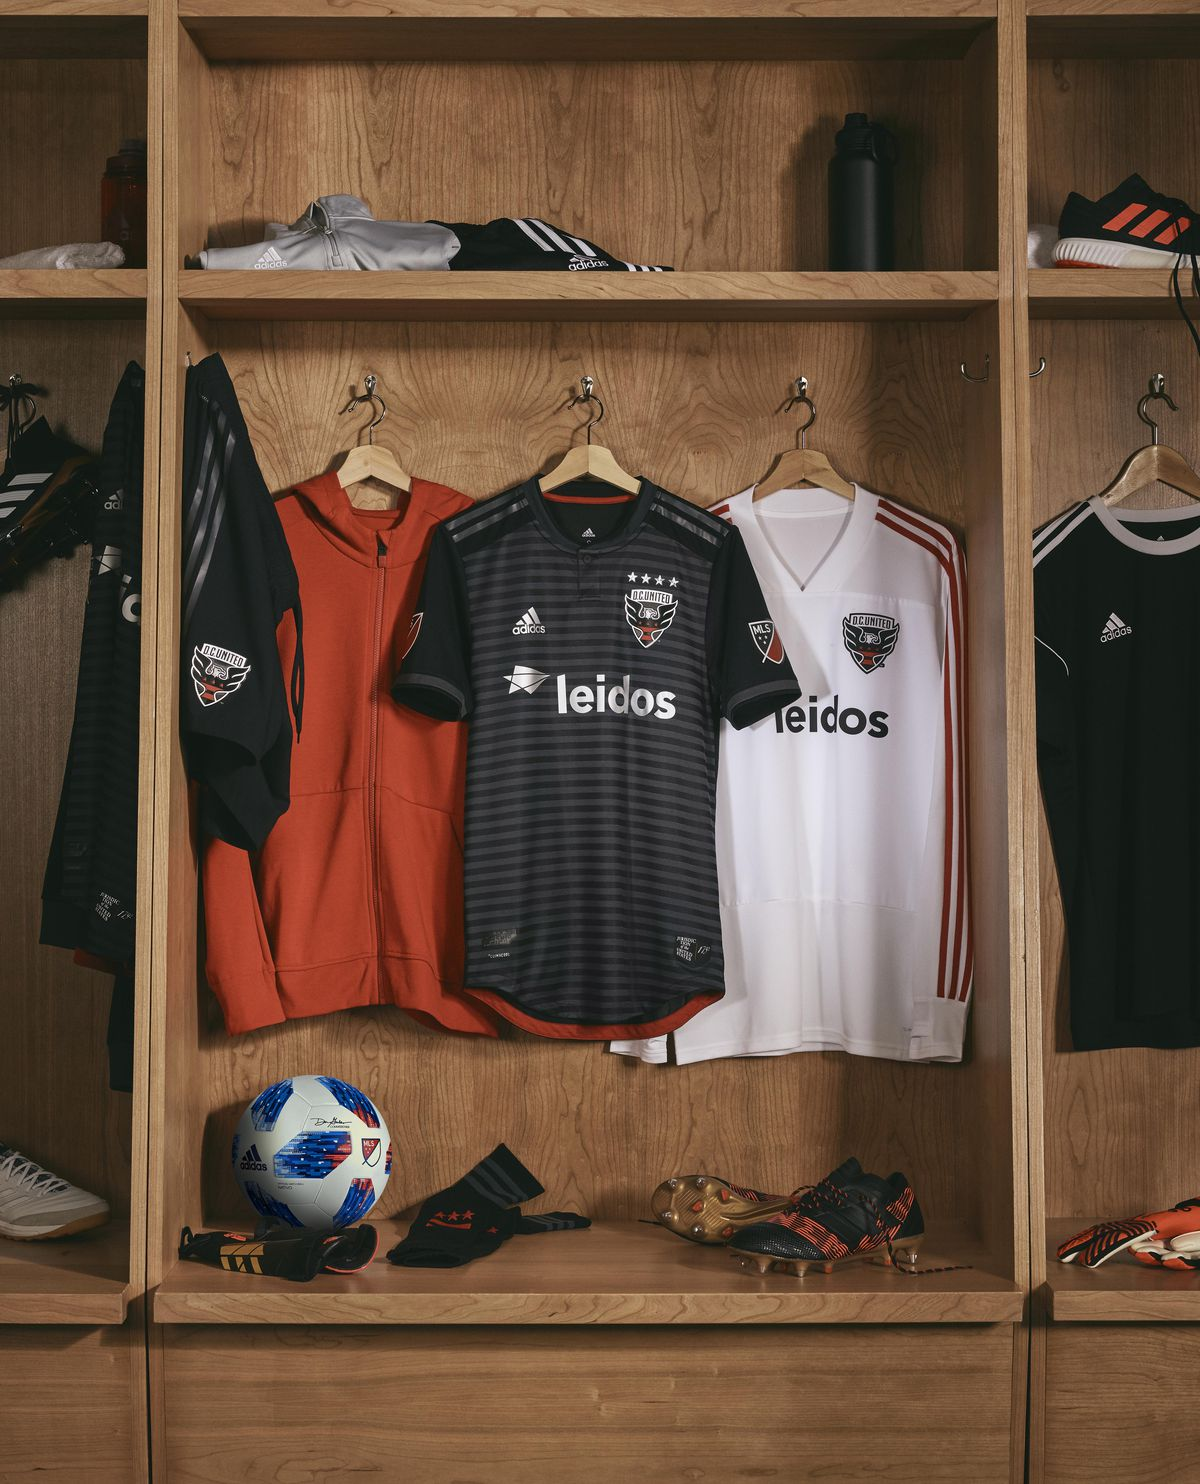 D.C. United jersey hanging